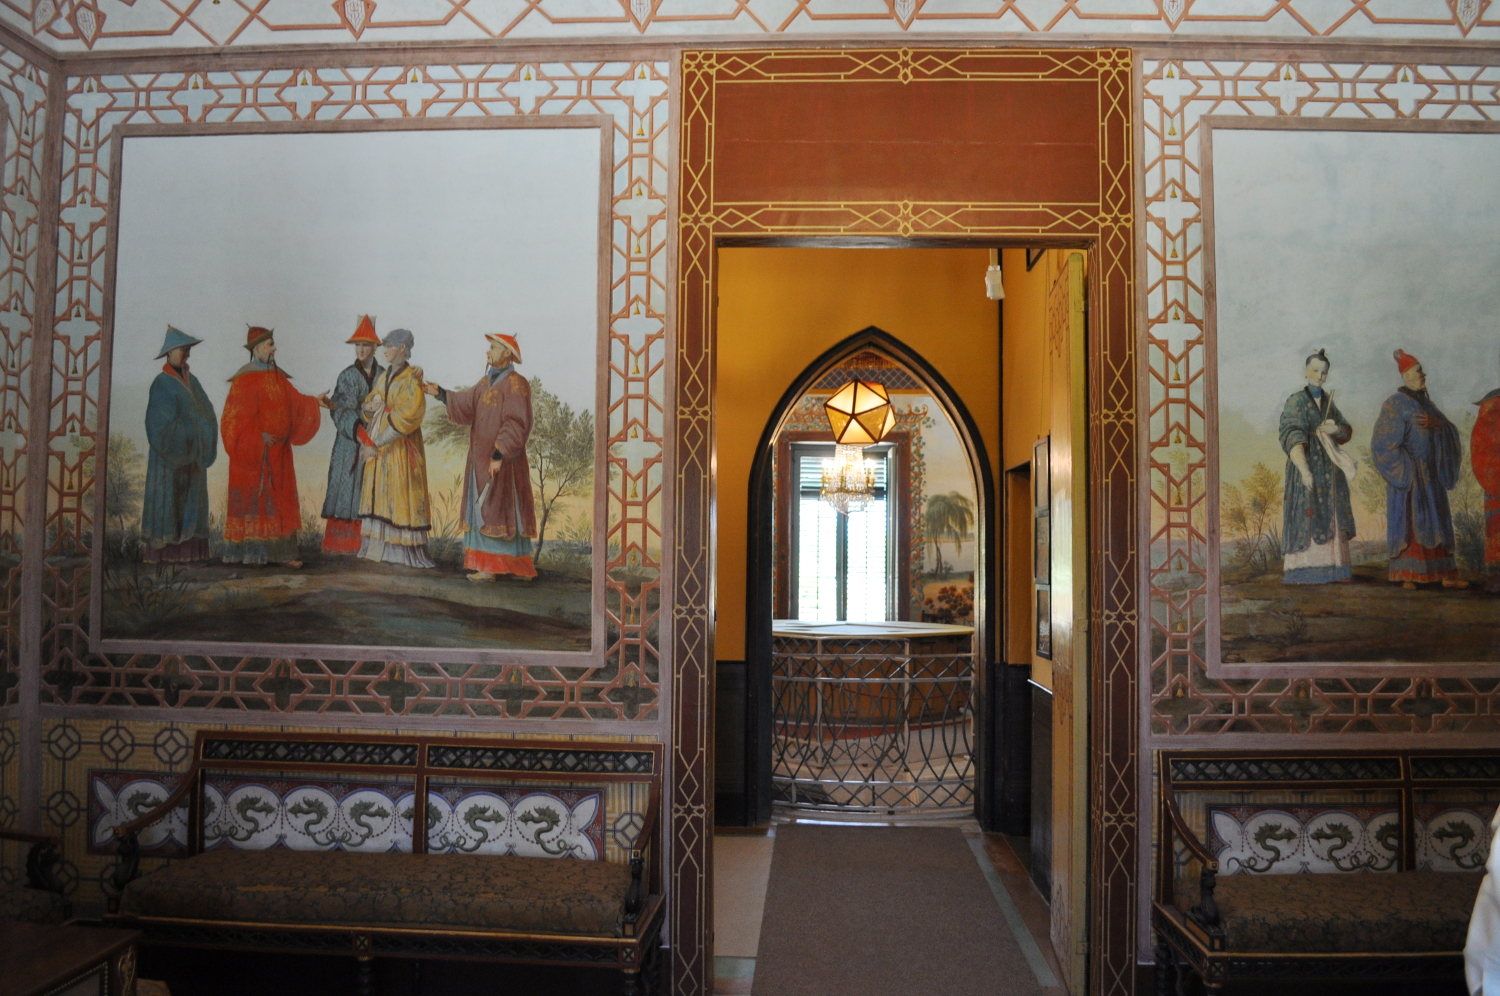 rocaille-blog-palazzina-cinese-palermo-6